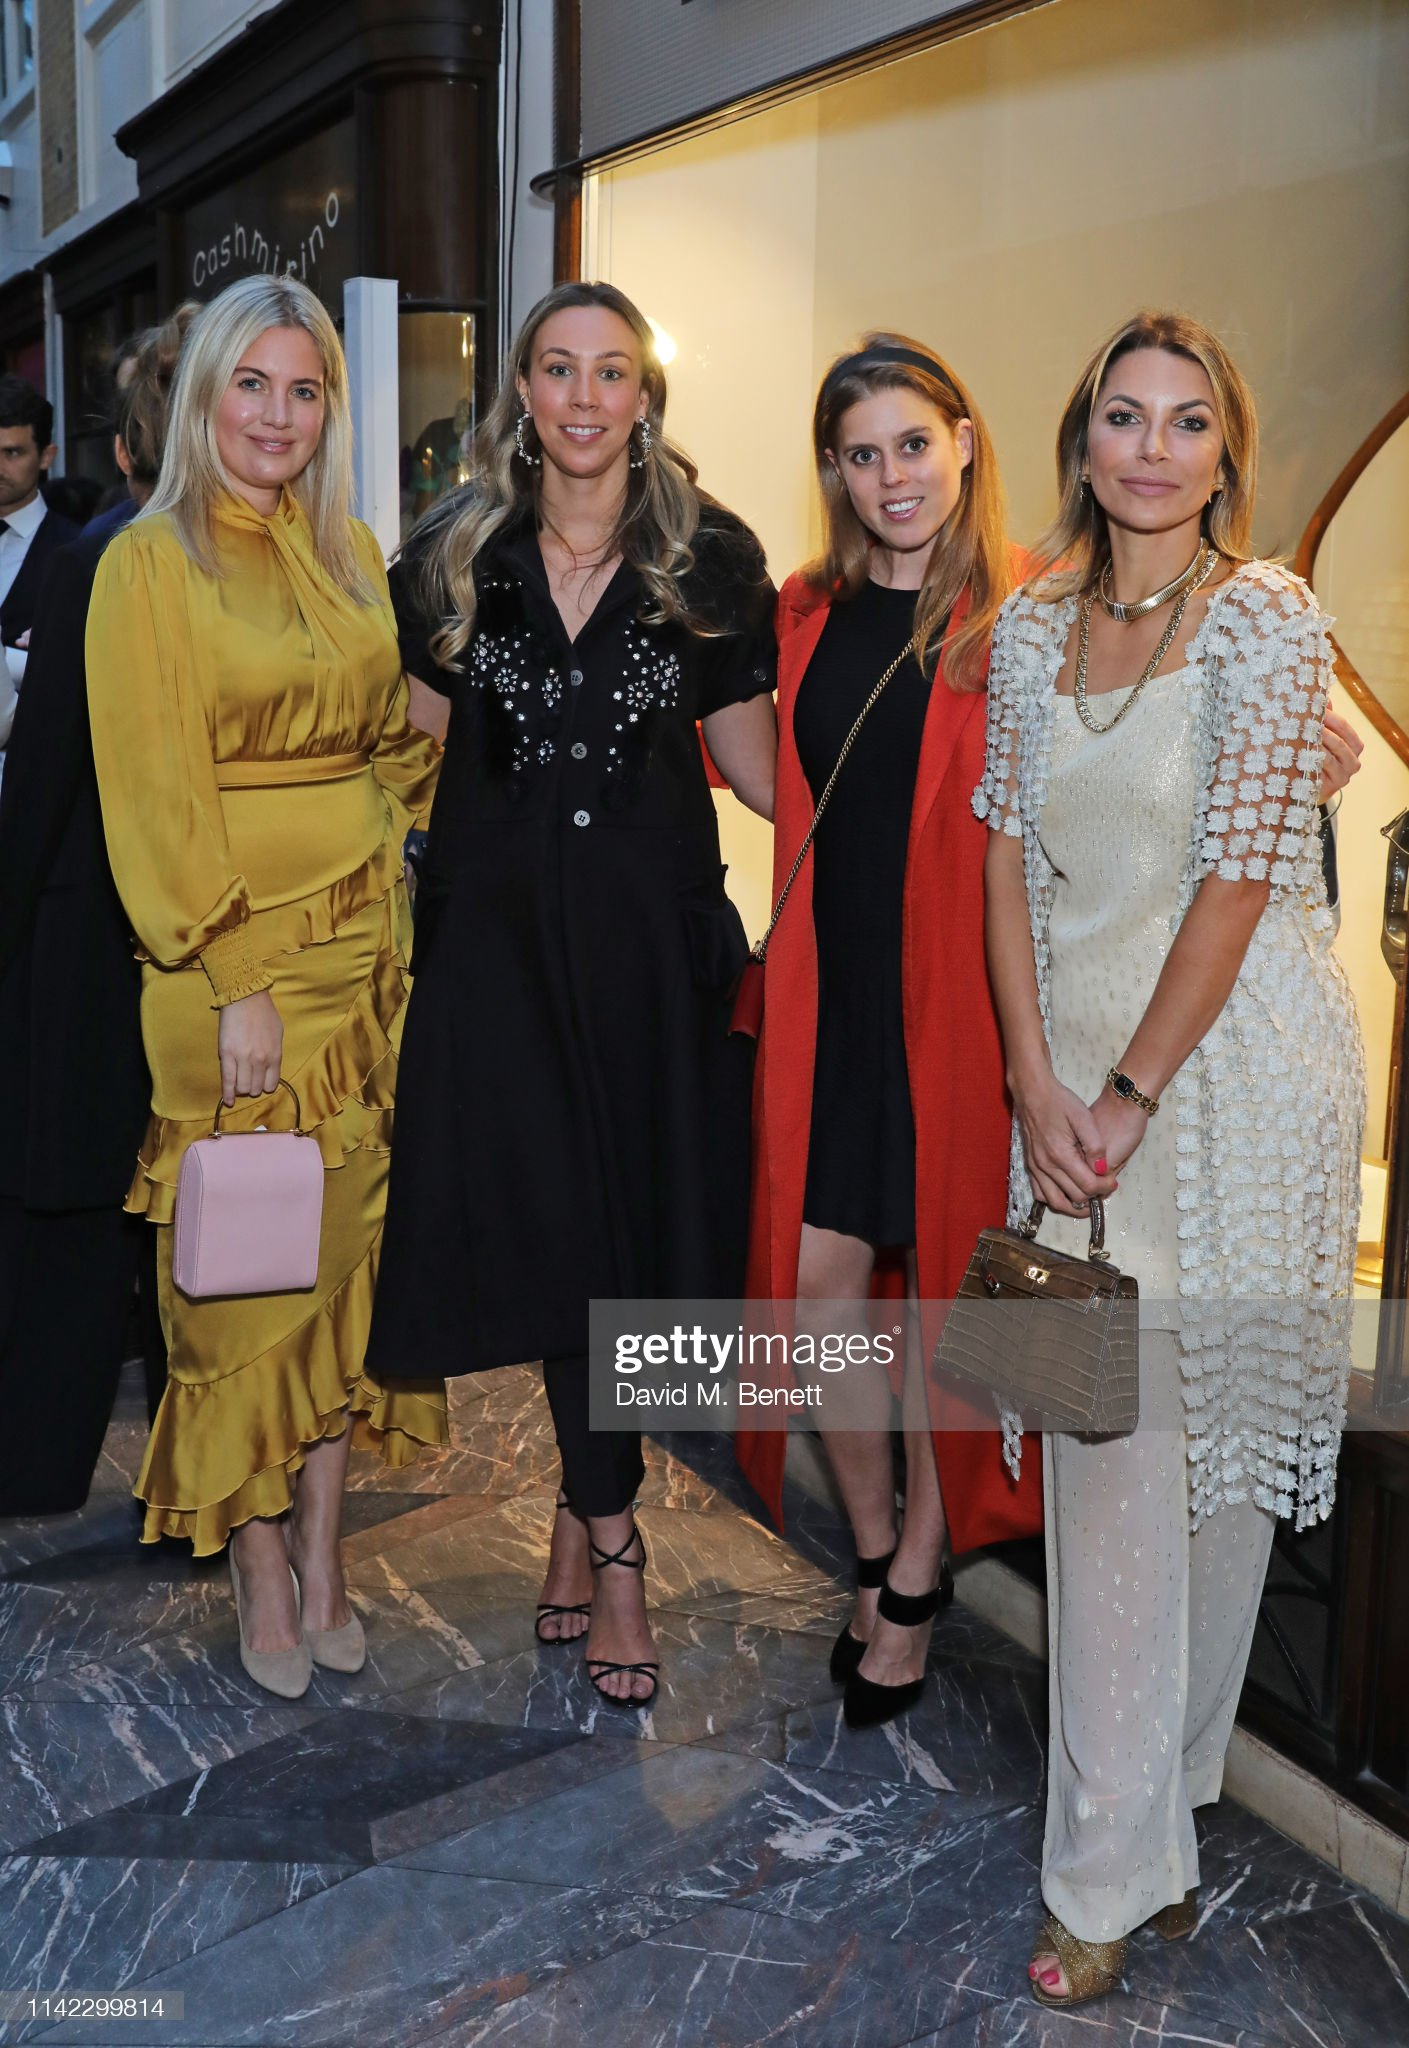 https://media.gettyimages.com/photos/marissa-montgomery-melissa-mills-princess-beatrice-of-york-and-picture-id1142299814?s=2048x2048